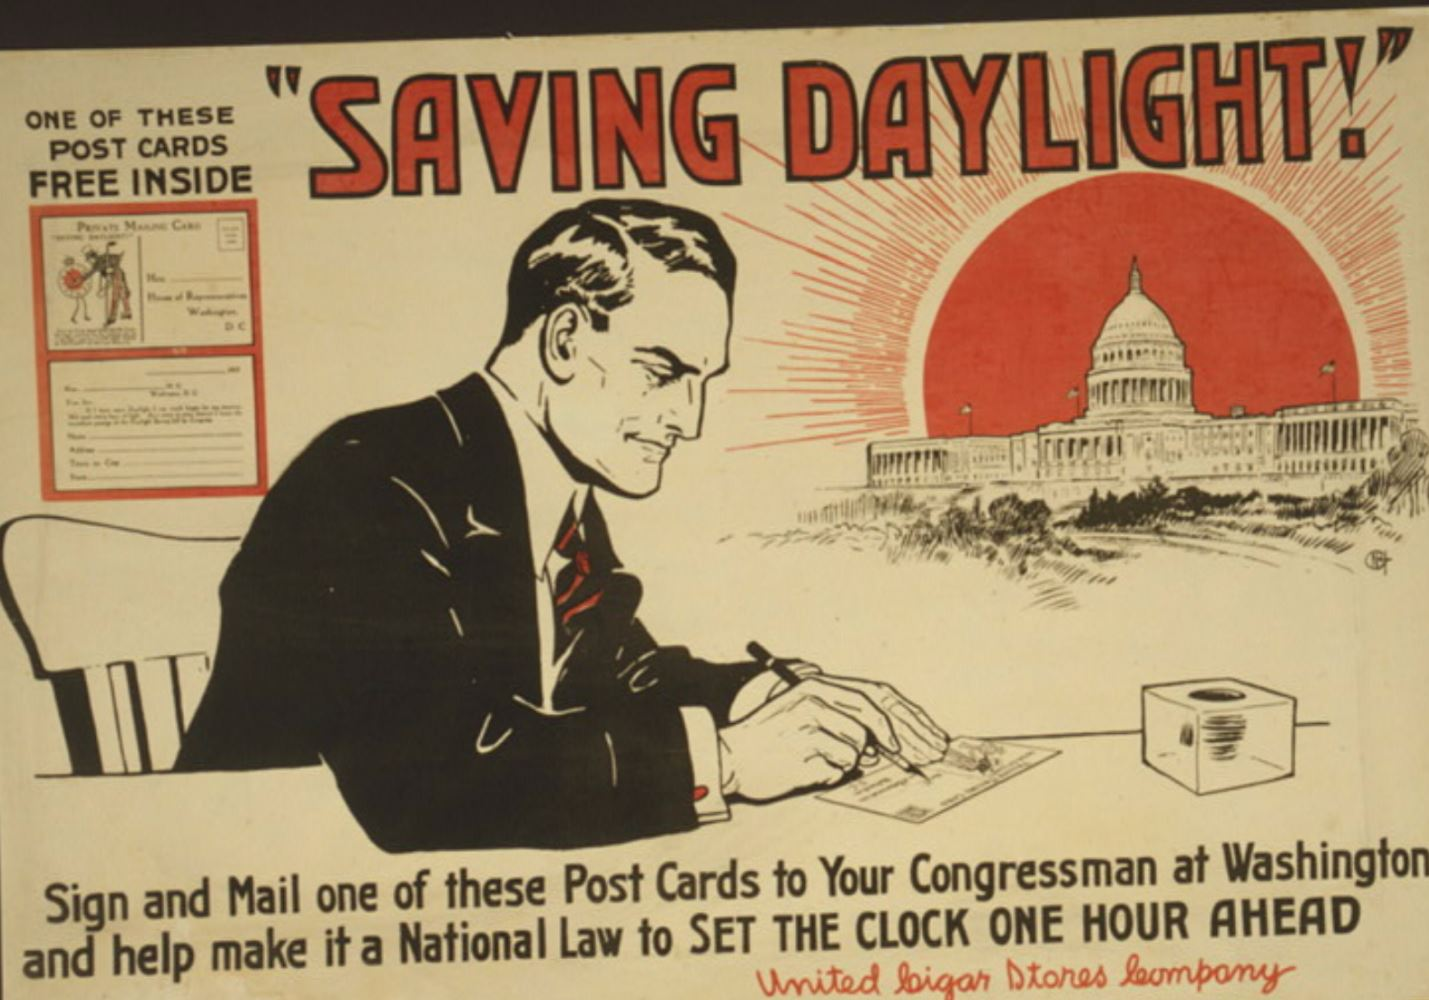 A postcard from 1918 promoting daylight saving time (image courtesy of the Library of Congress)